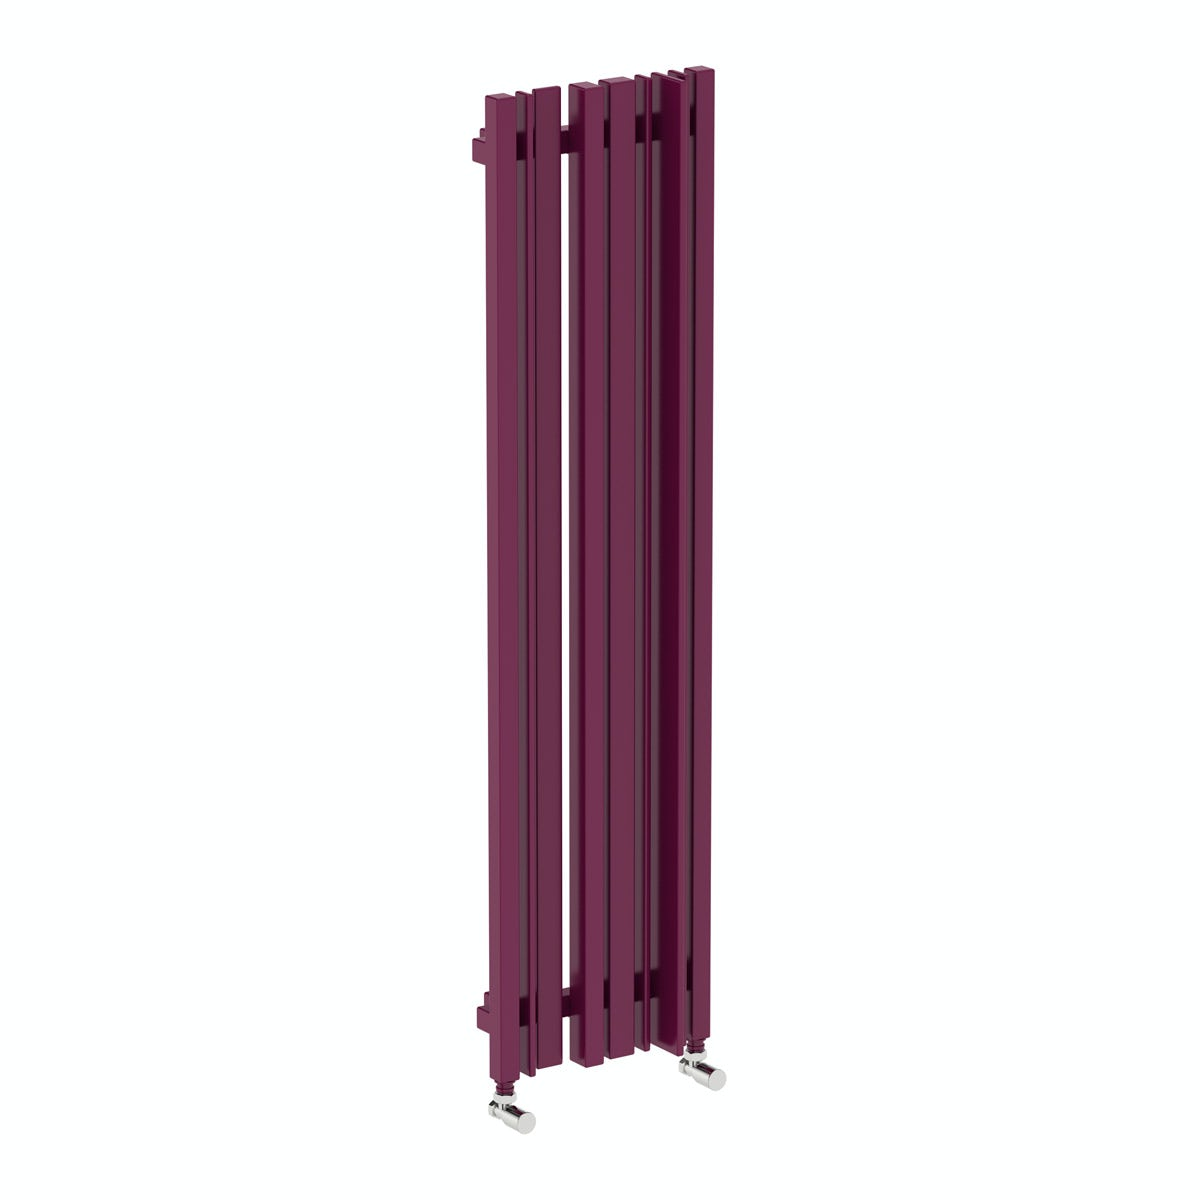 Sherwood purple violet vertical radiator 1300 x 330